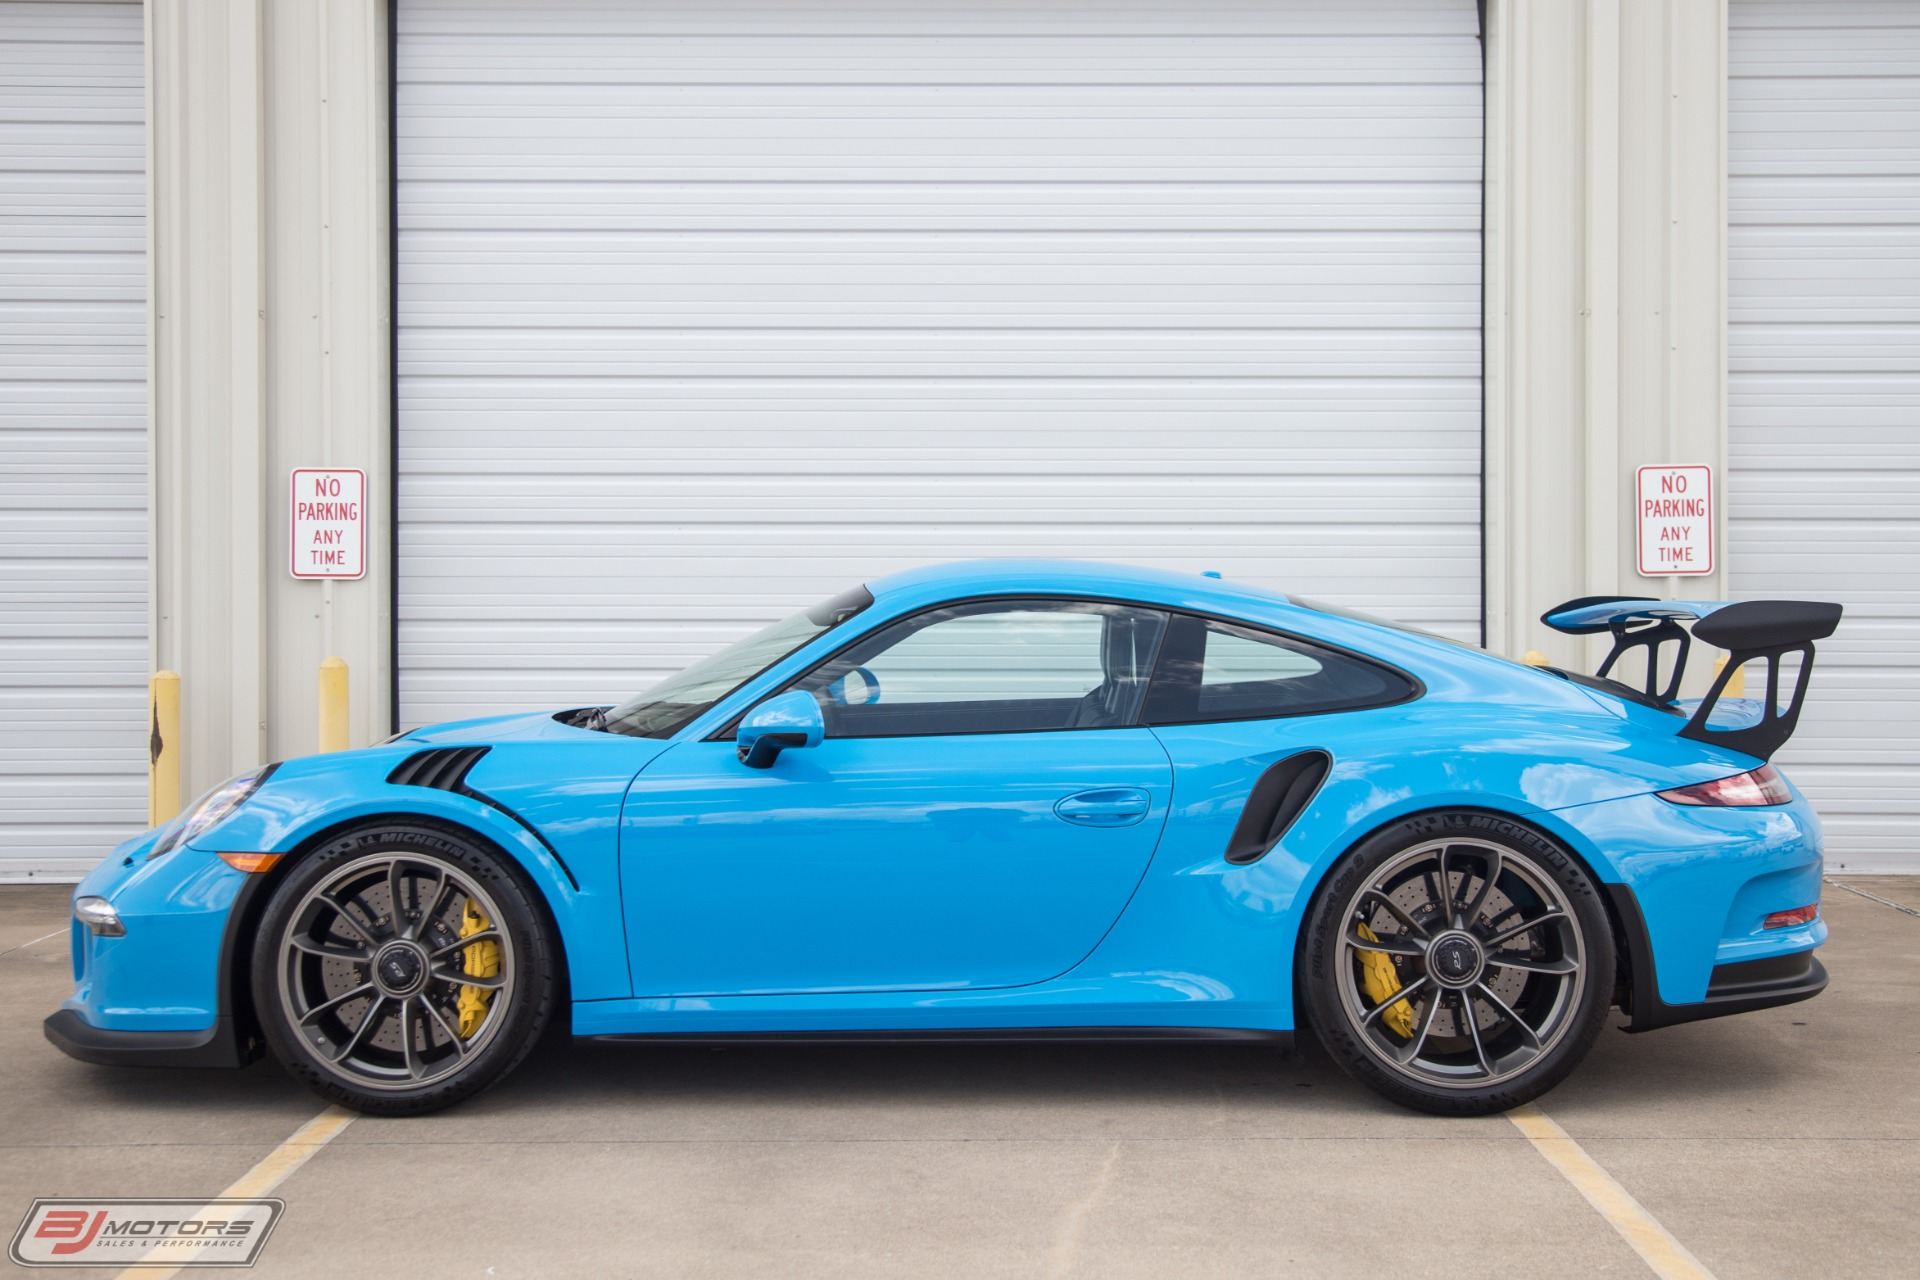 used 2016 porsche 911 gt3rs for sale 189 995 bj motors stock gs192549 used 2016 porsche 911 gt3rs for sale